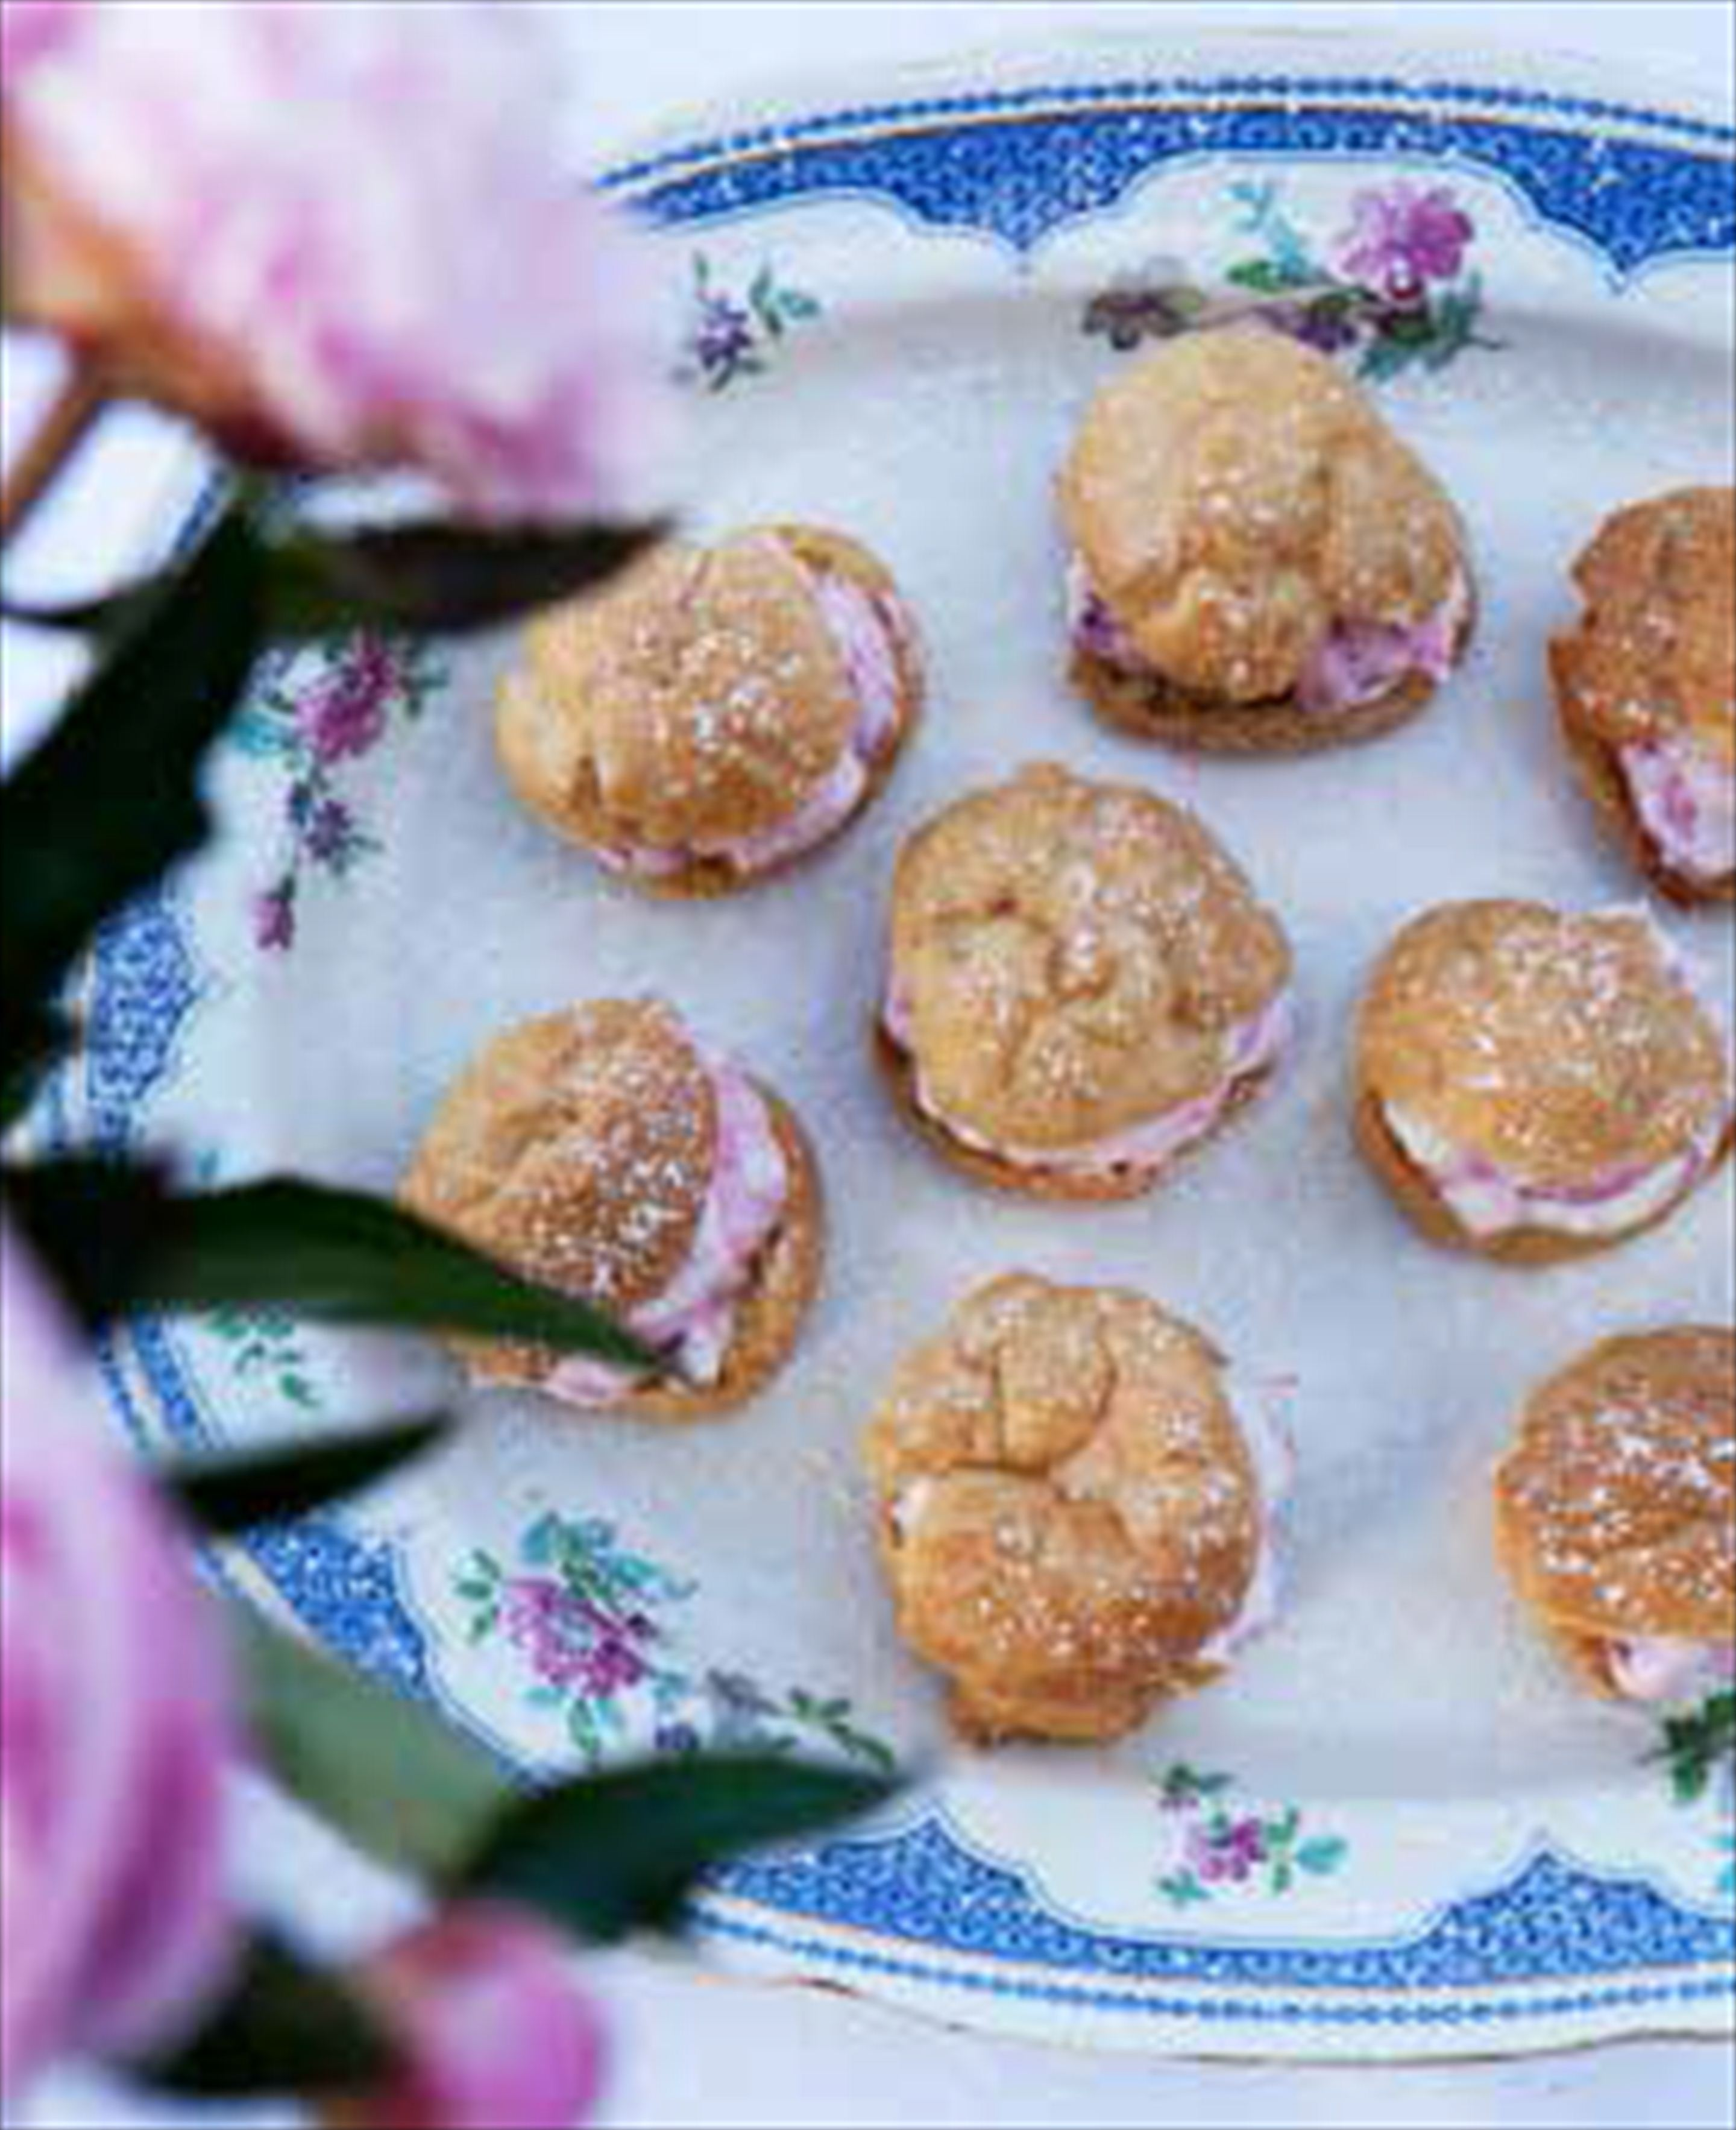 Choux pastries with rhubarb cream